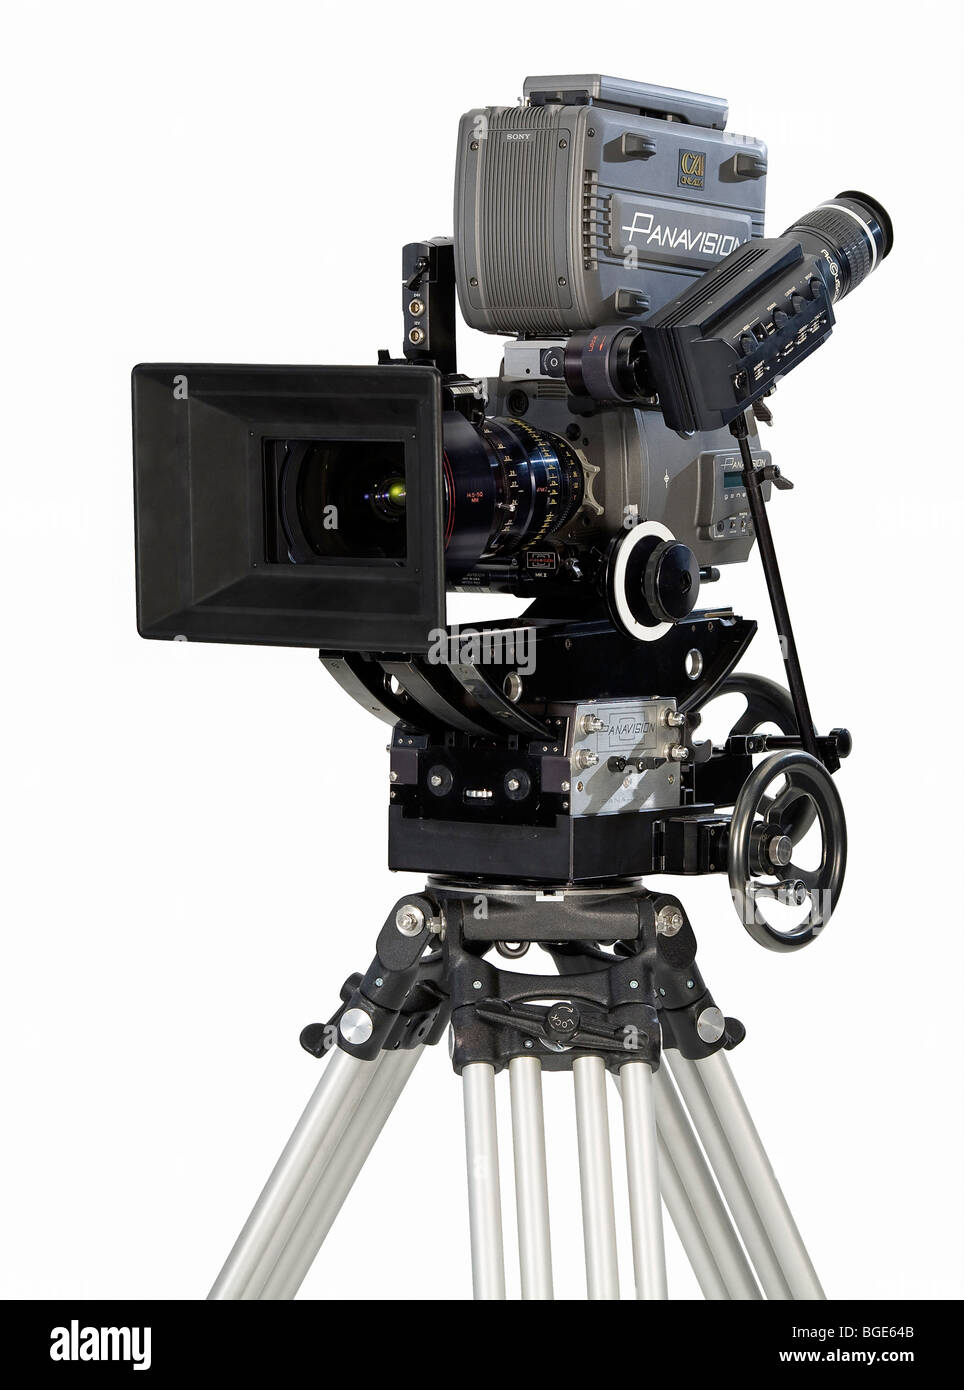 Studio Product Shot Of A Panavision Genesis Modern Digital Movie Camera